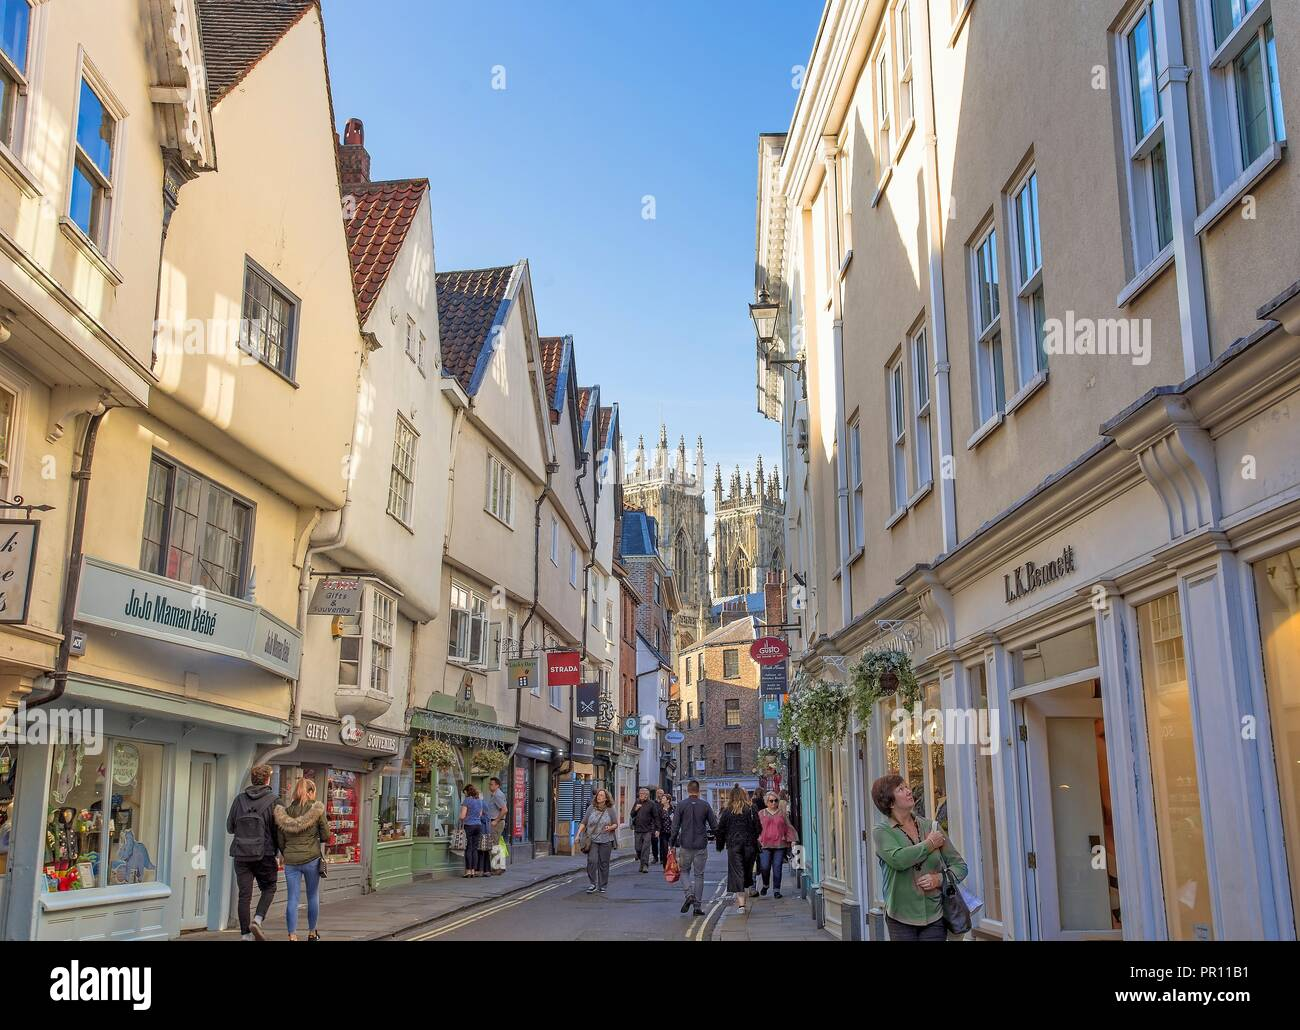 Low Petrergate, a street in York with its shops and the towers of York Minster in the background. Stock Photo